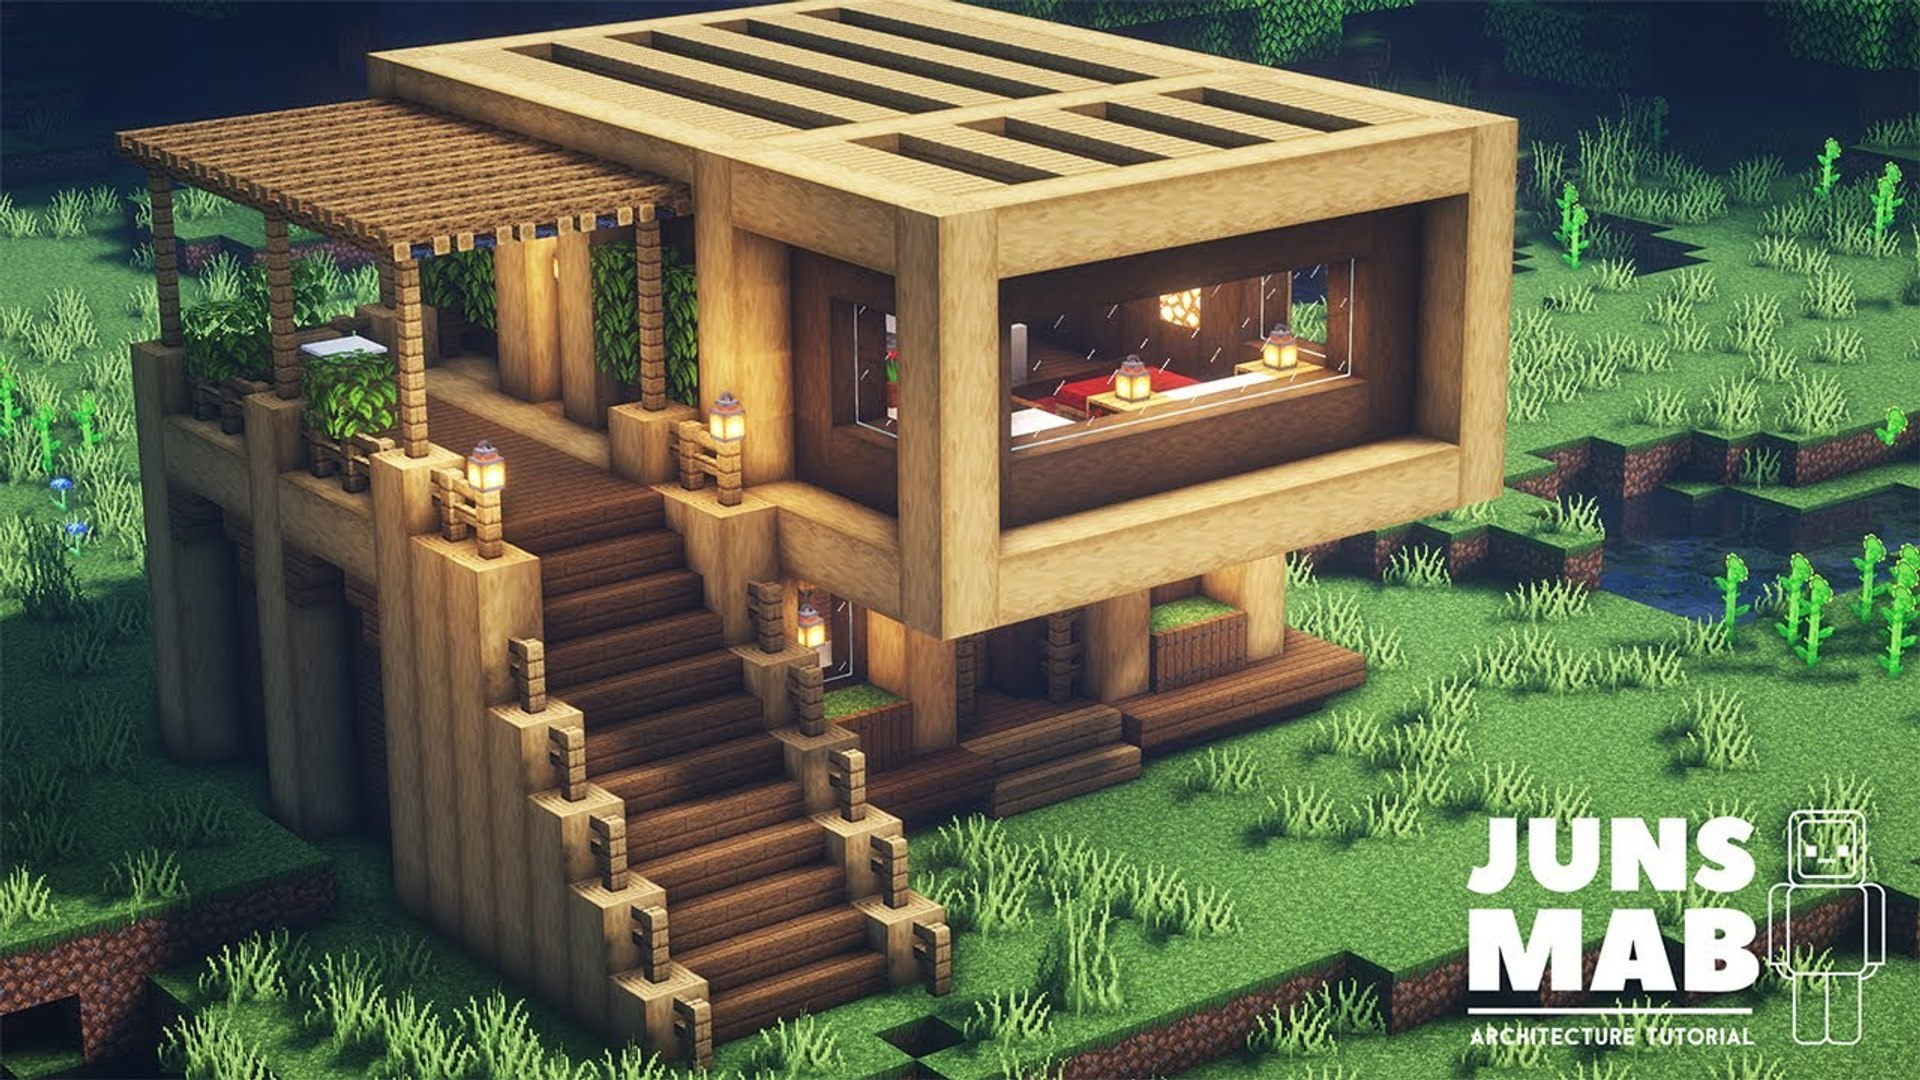 Minecraft- How to Build a Wooden House - Easy Survival House Tutorial #10